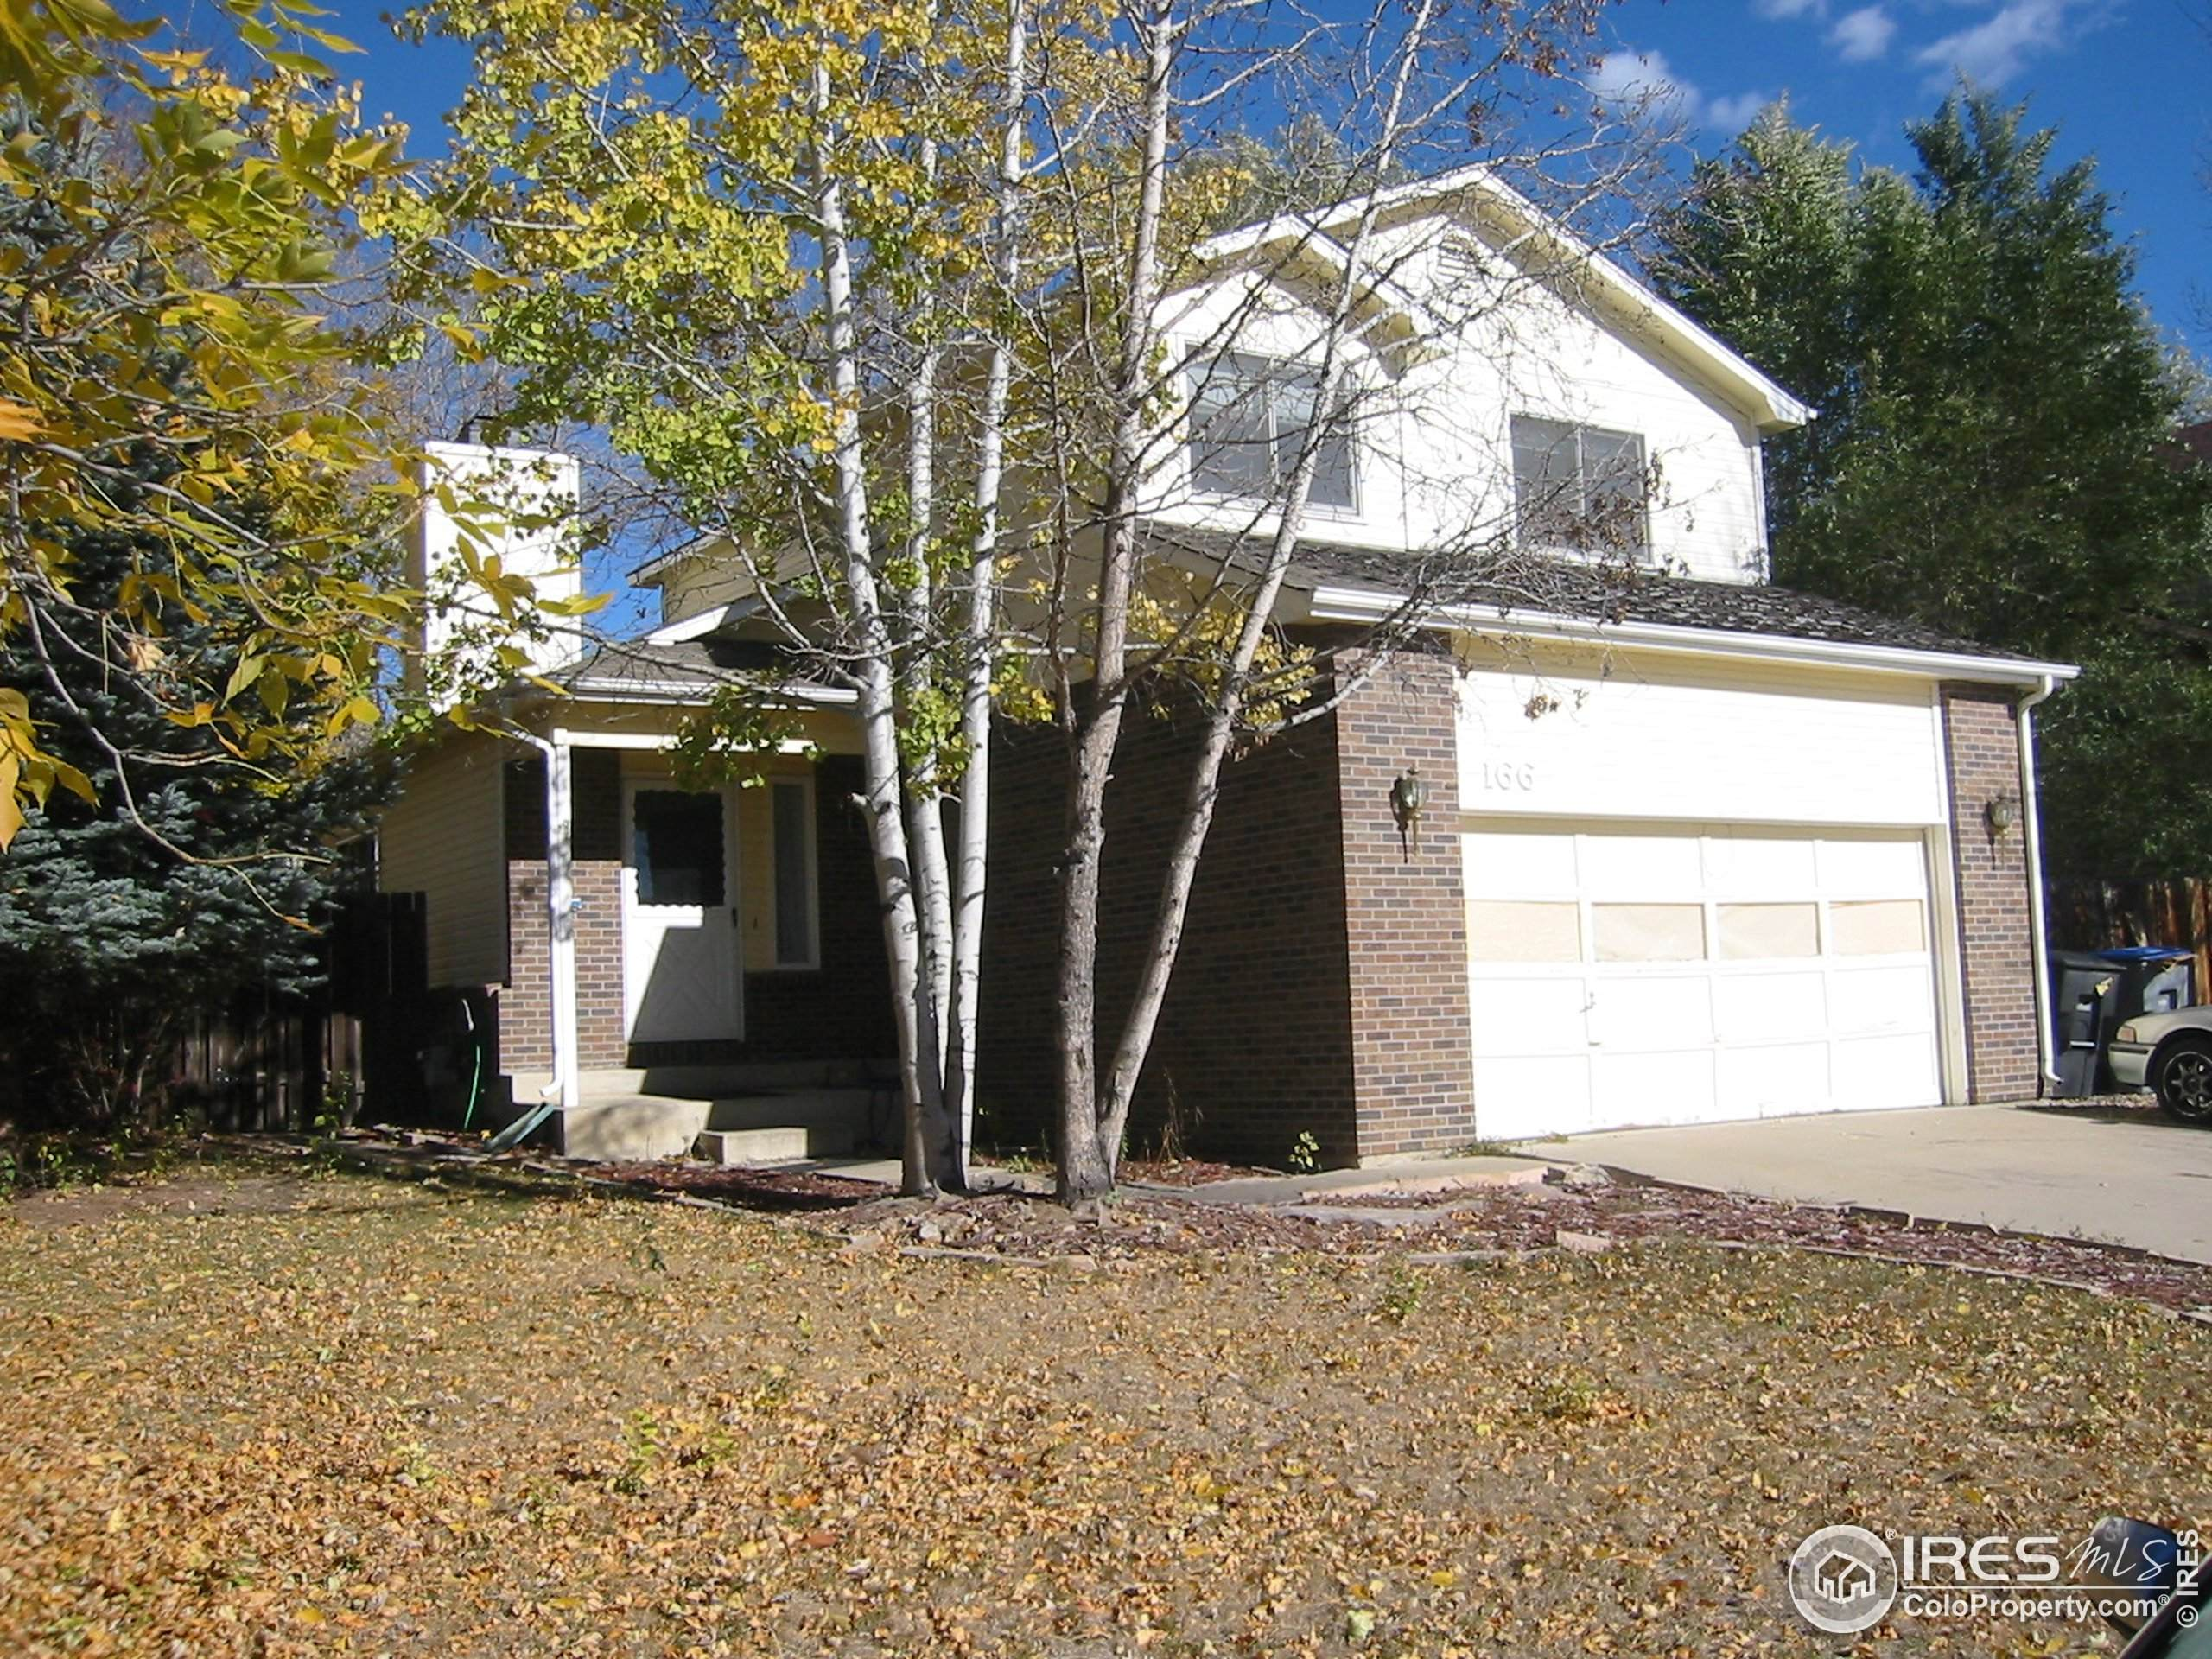 1713 18th Ave, Greeley, CO 80631 (MLS #942404) :: RE/MAX Alliance